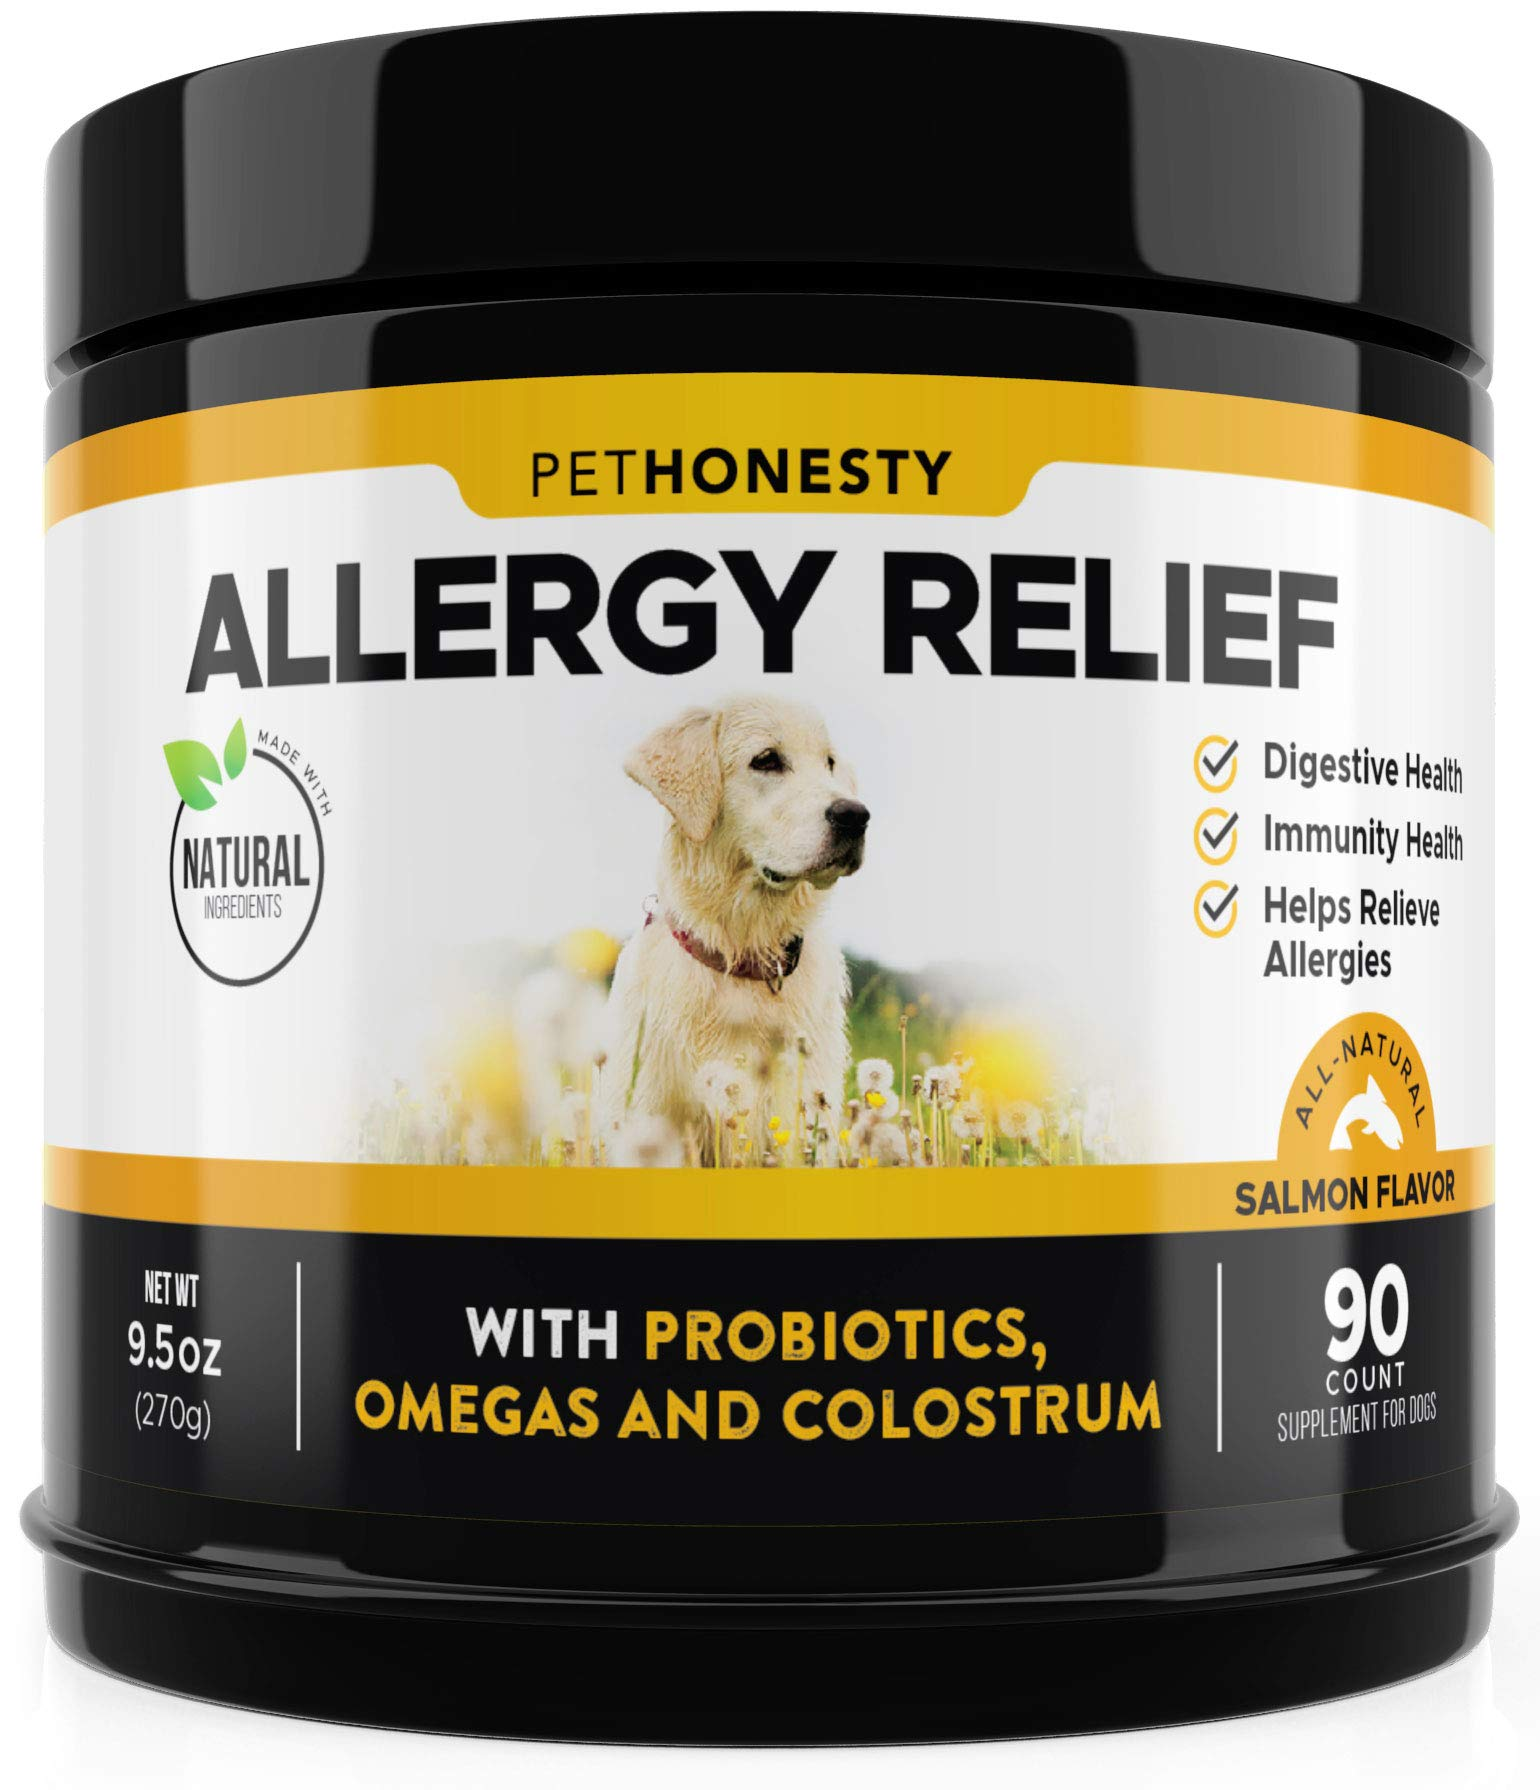 PetHonesty Allergy Relief Immunity Supplement for Dogs - Omega 3 Salmon Fish Oil, Colostrum, Digestive Prebiotics & Probiotics - for Seasonal Allergies + Anti Itch, Skin Hot Spots Soft Chews by PetHonesty